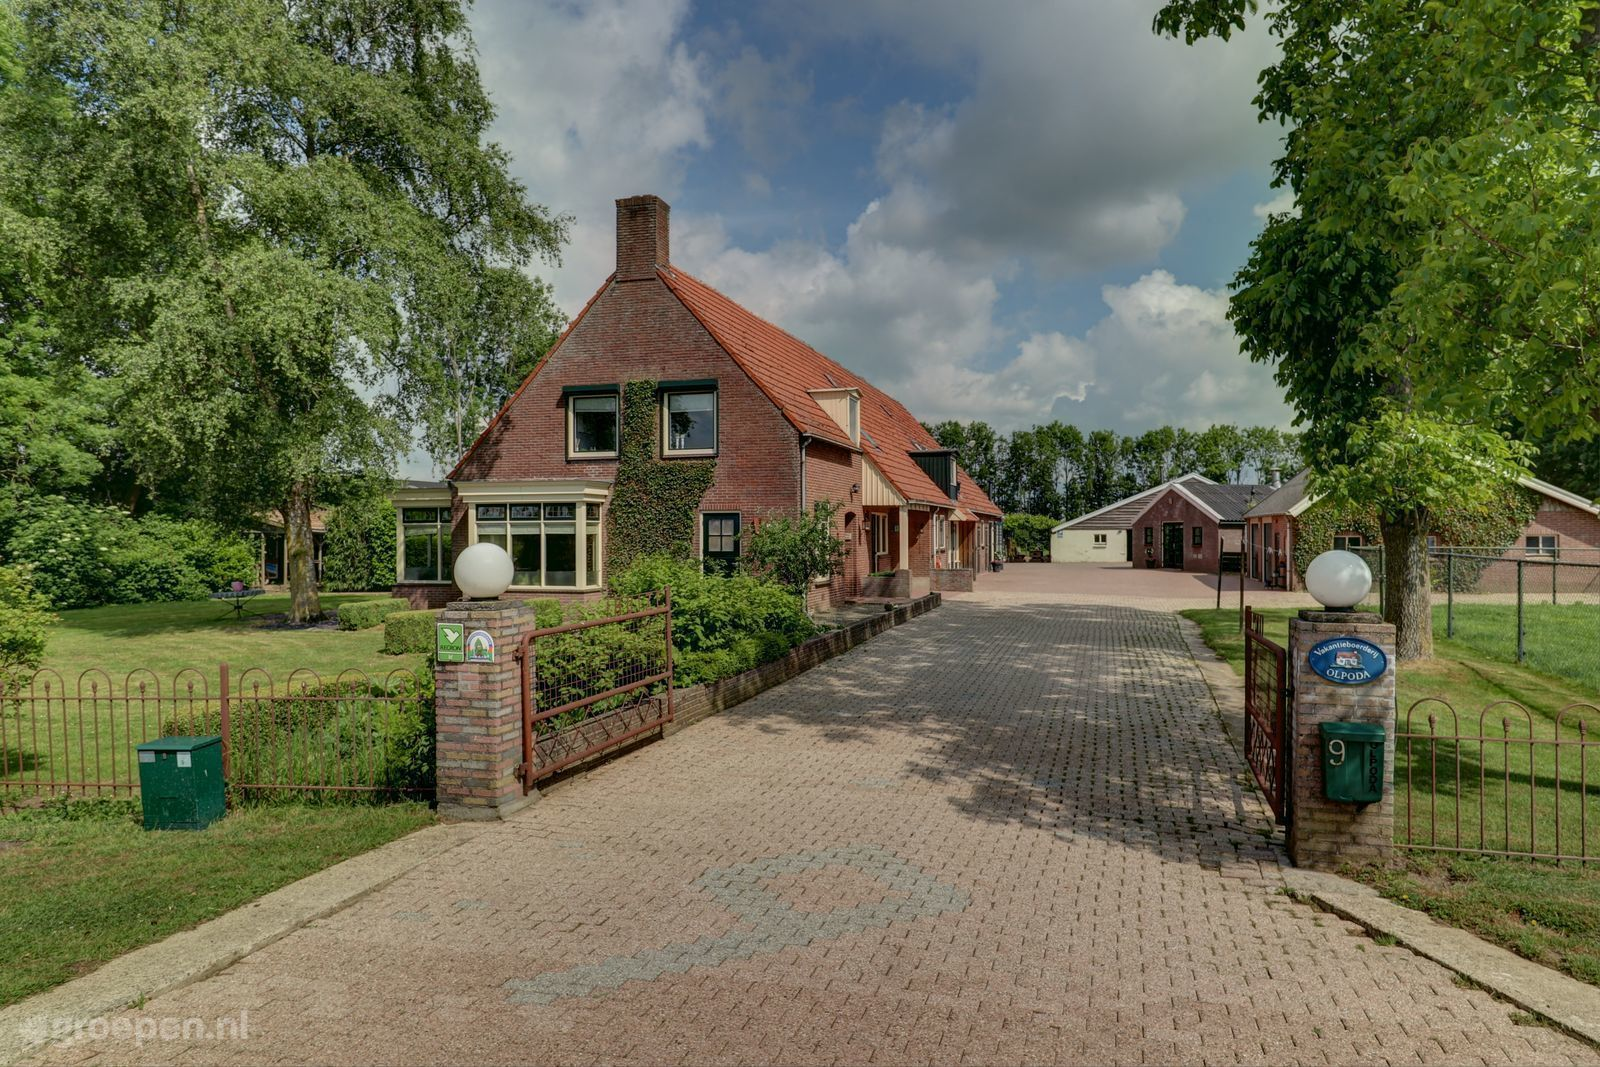 Group accommodation Beneden-Leeuwen